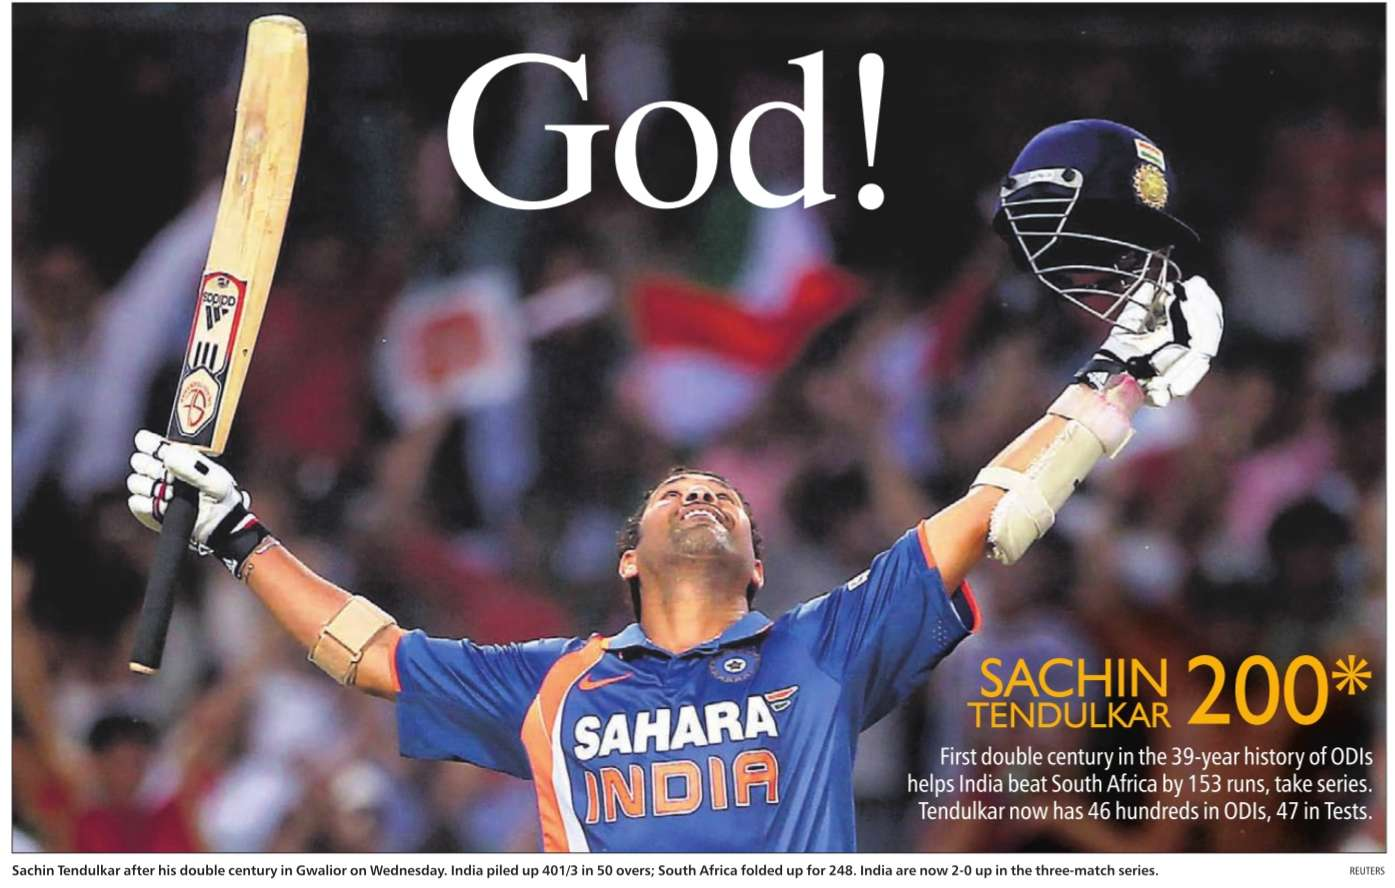 Sachin Tendulkar after scoring ODI Cricket's first double century